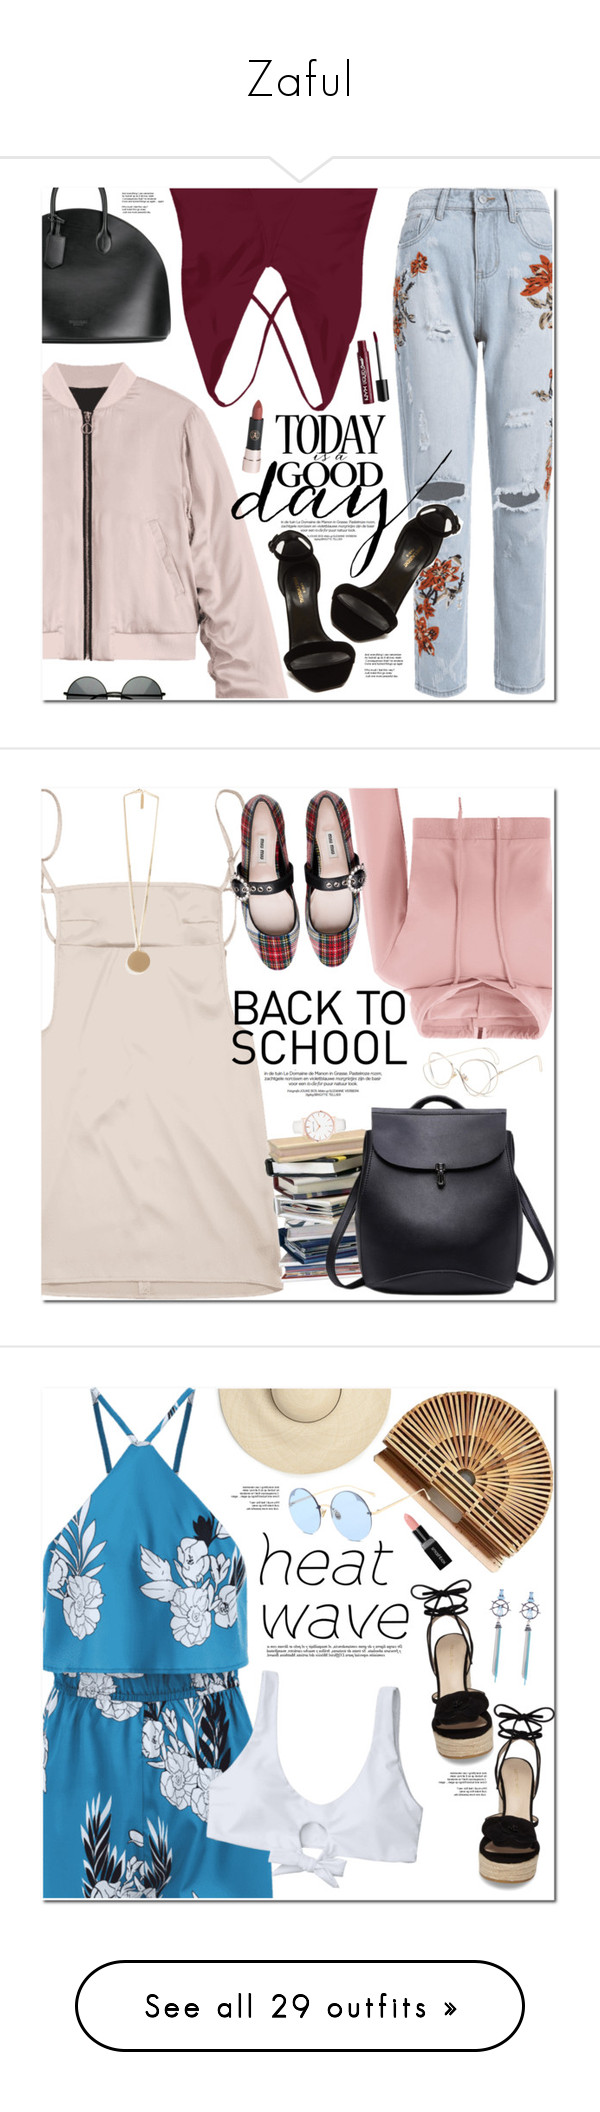 """""""Zaful"""" by oshint ❤ liked on Polyvore featuring Calvin Klein 205W39NYC, Yves Saint Laurent, Charlotte Russe, Abbott Lyon, Givenchy, Pelle Moda, Smashbox, Gucci, Accessorize and Betsey Johnson"""